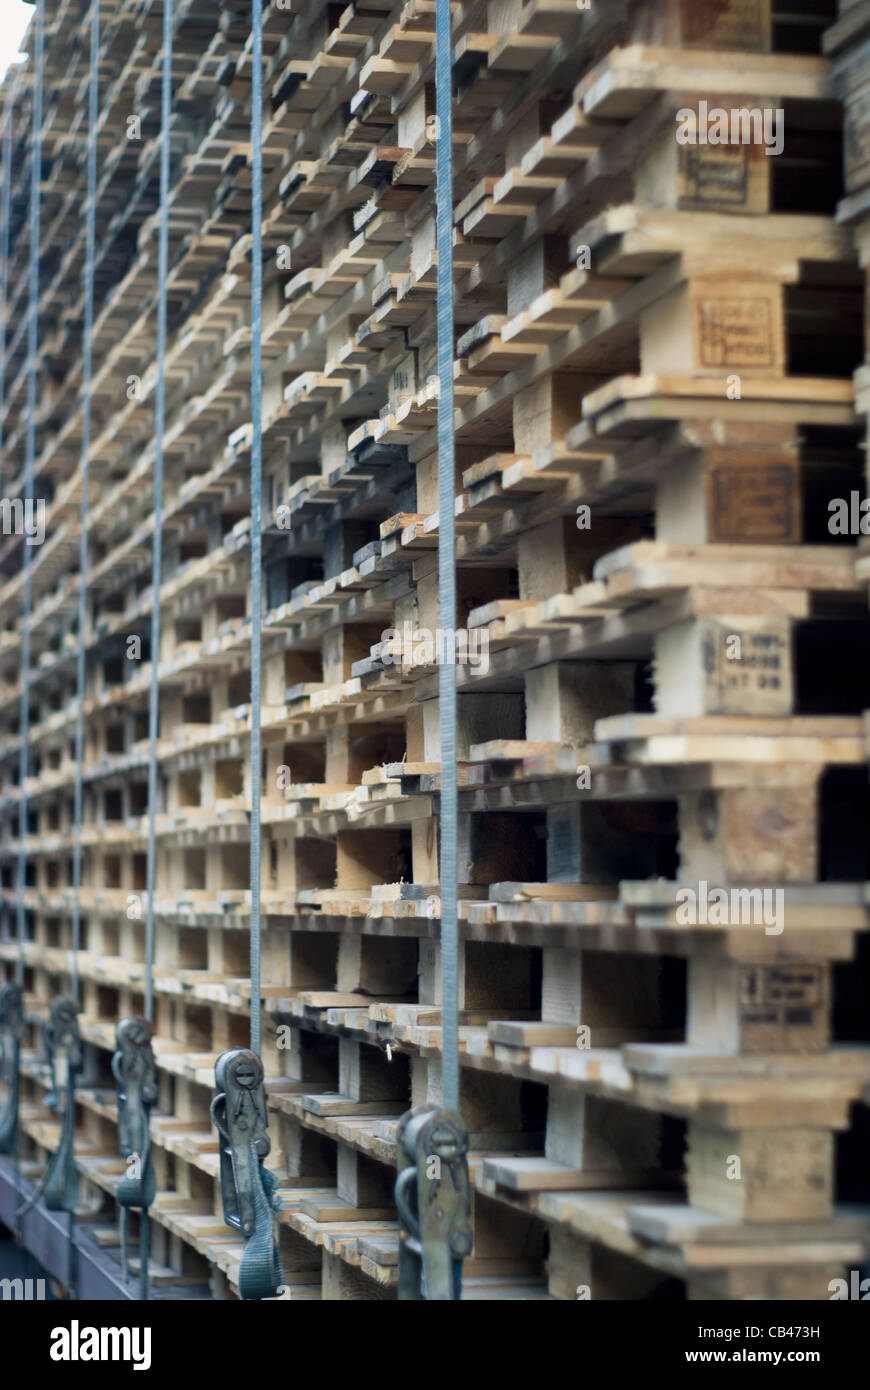 Stacked Pallets or Skids. Vanishing Point. - Stock Image